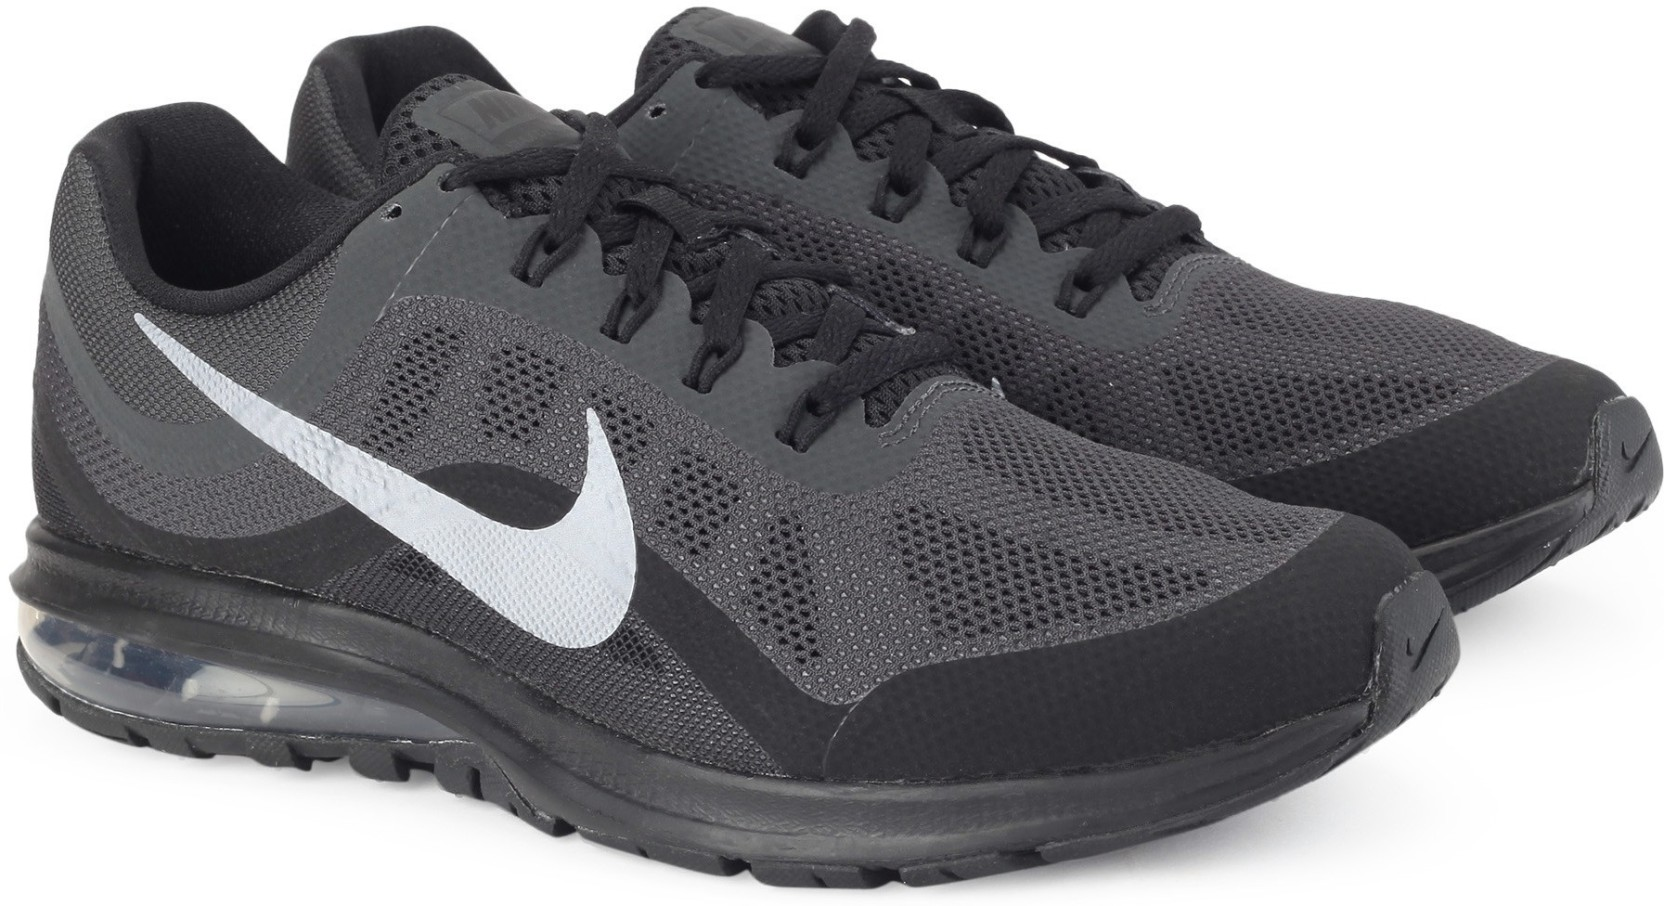 cdcf999b339 Nike AIR MAX DYNASTY 2 Running Shoes For Men - Buy ANTHRACITE MTLC ...